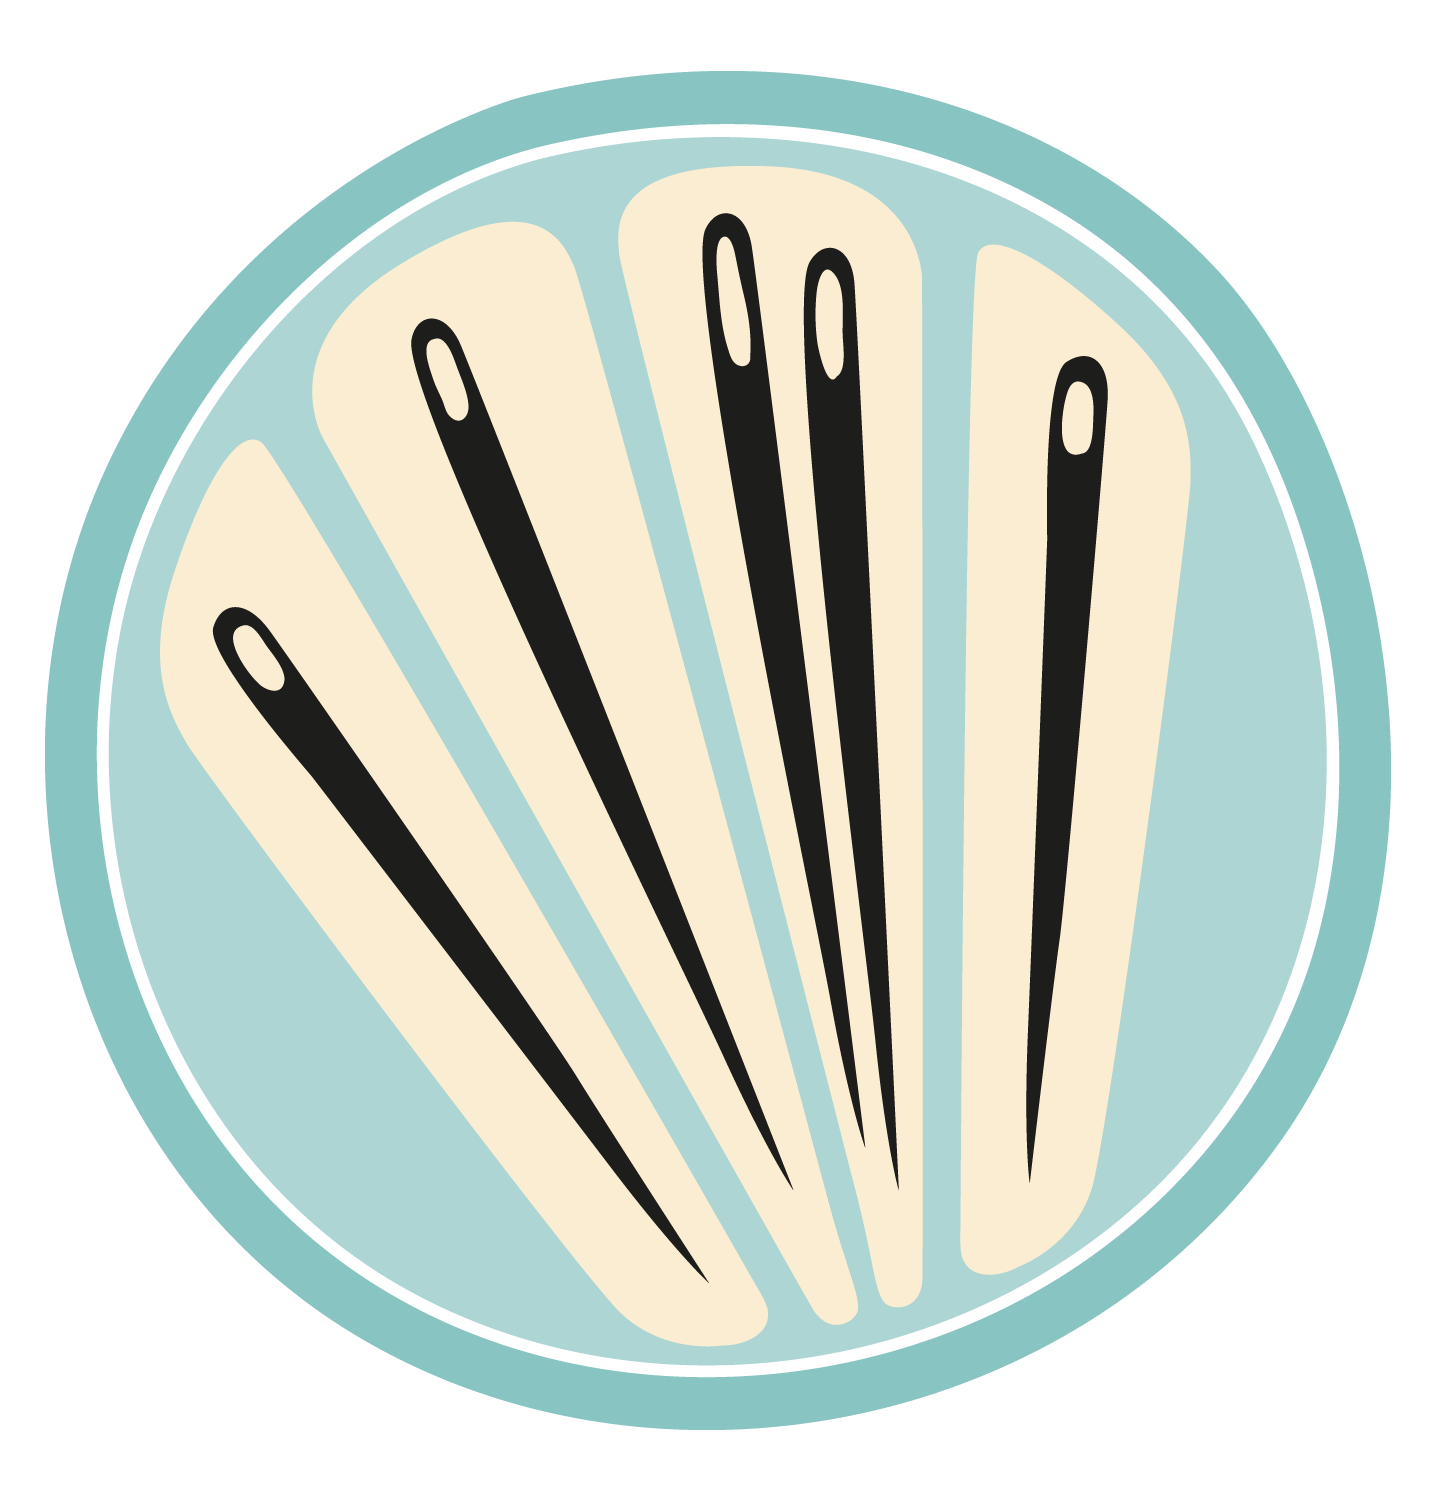 sewing clipart needlework